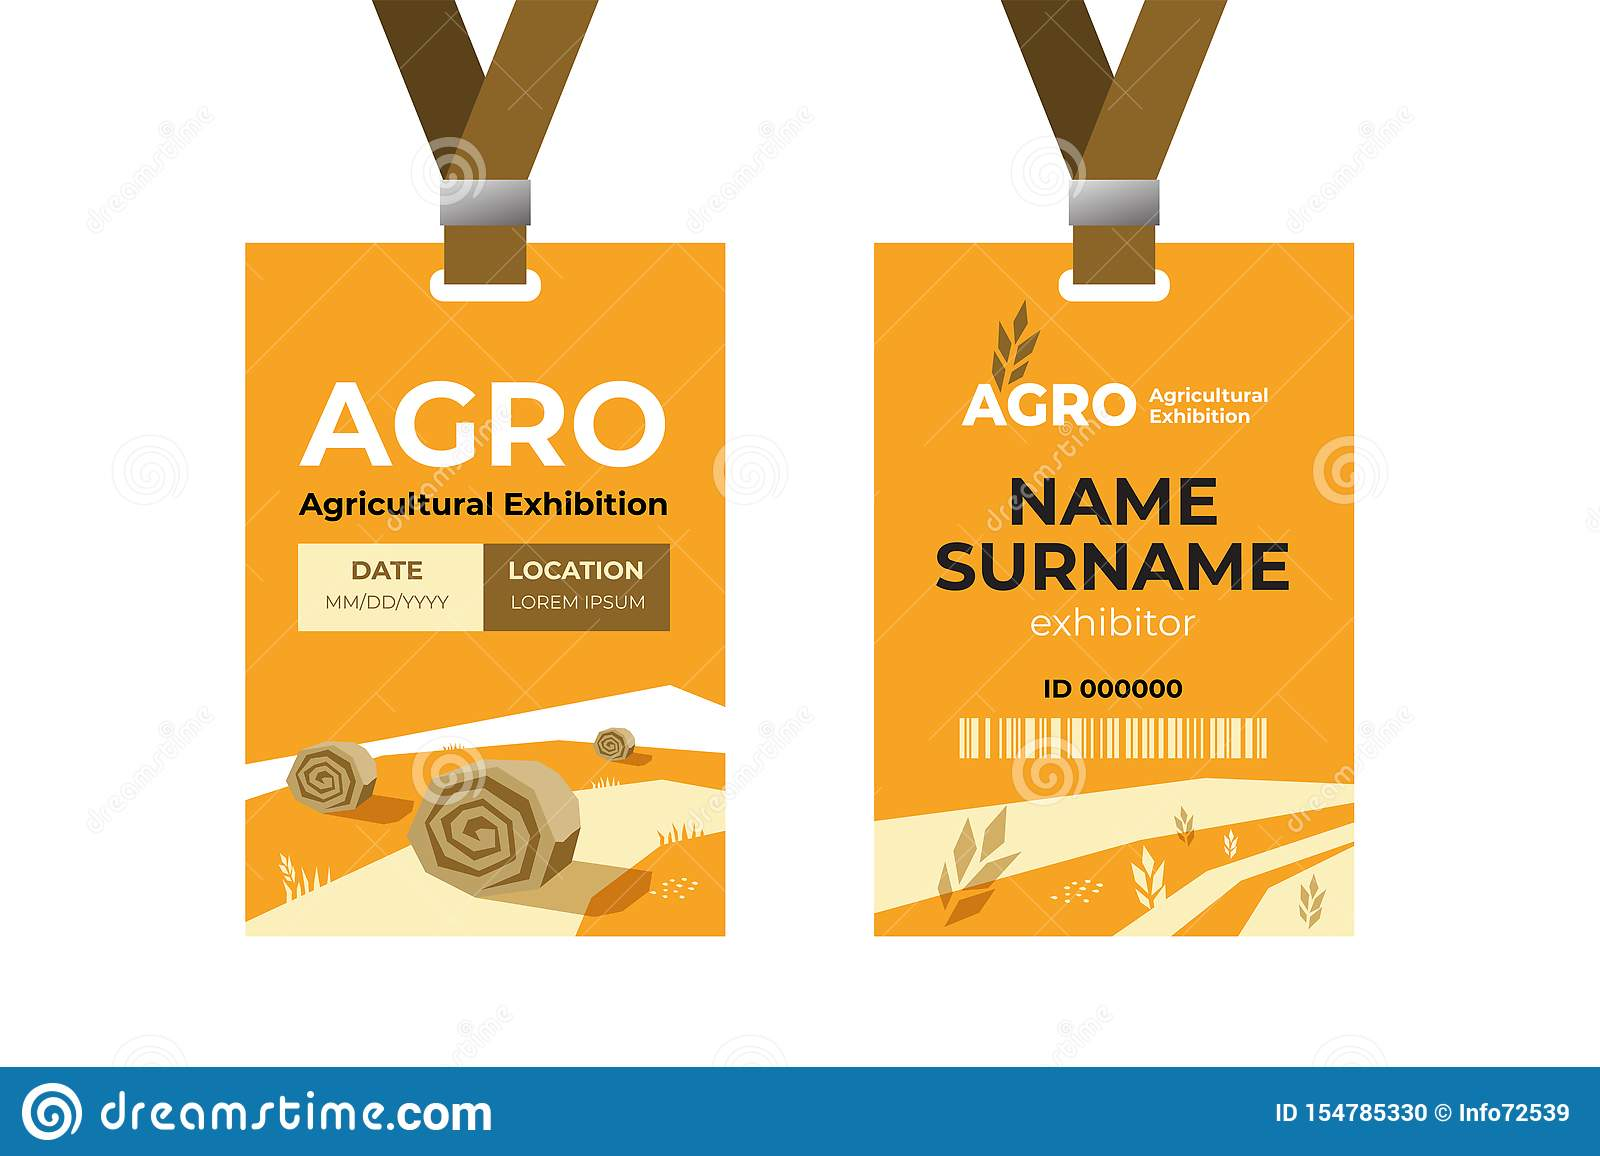 ID Card Template. Agro Logo. Stock Vector - Illustration of Regarding Conference Id Card Template